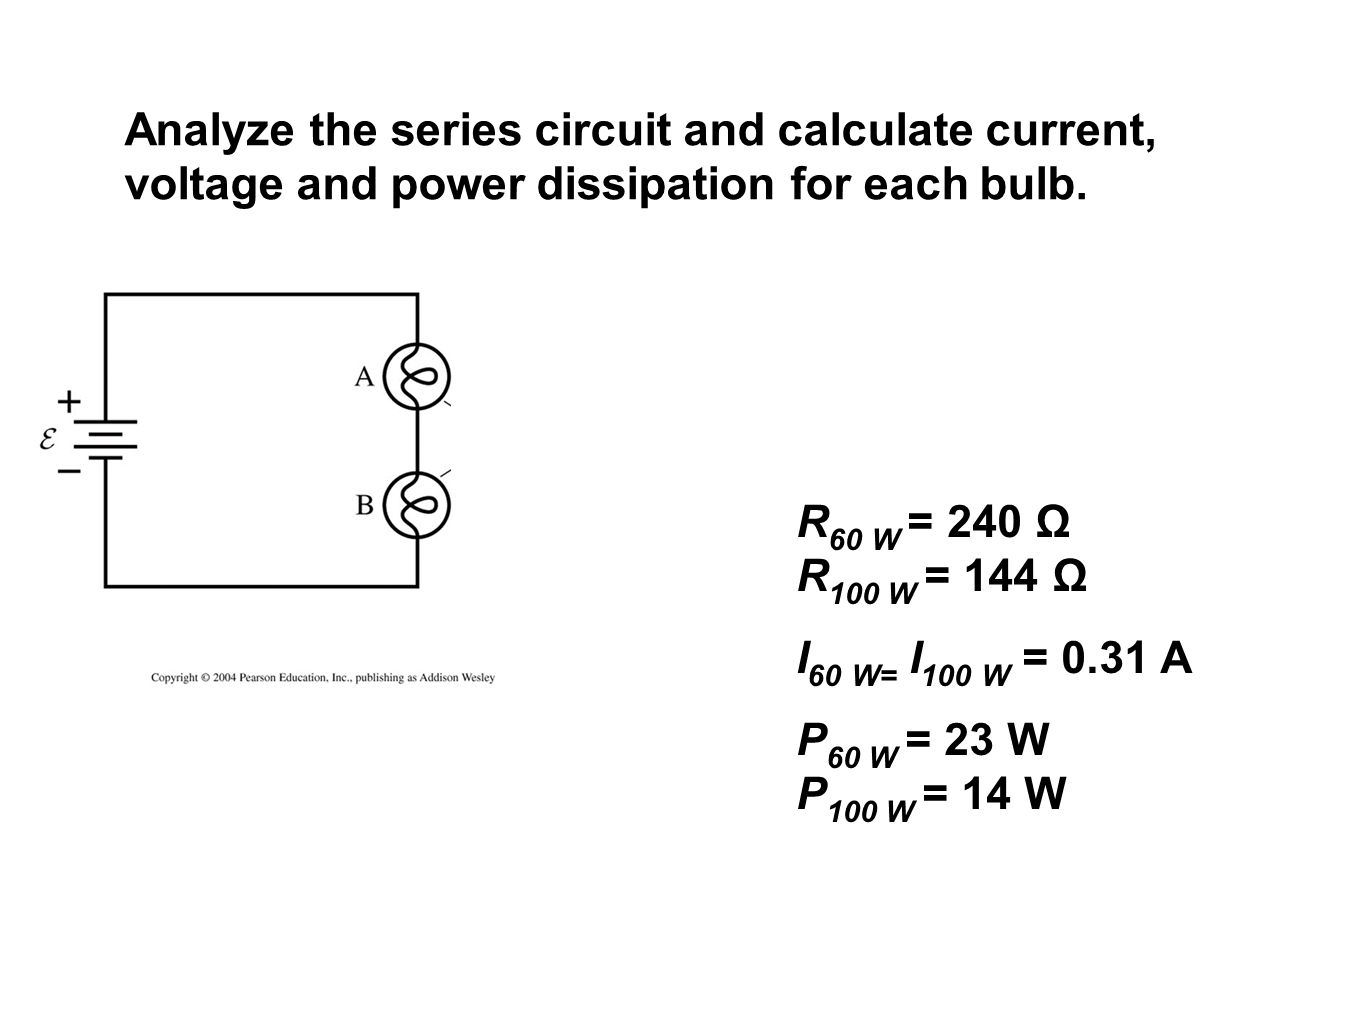 Series And Parallel Circuits Ppt Video Online Download What Are Analyze The Circuit Calculate Current Voltage Power Dissipation For Each Bulb